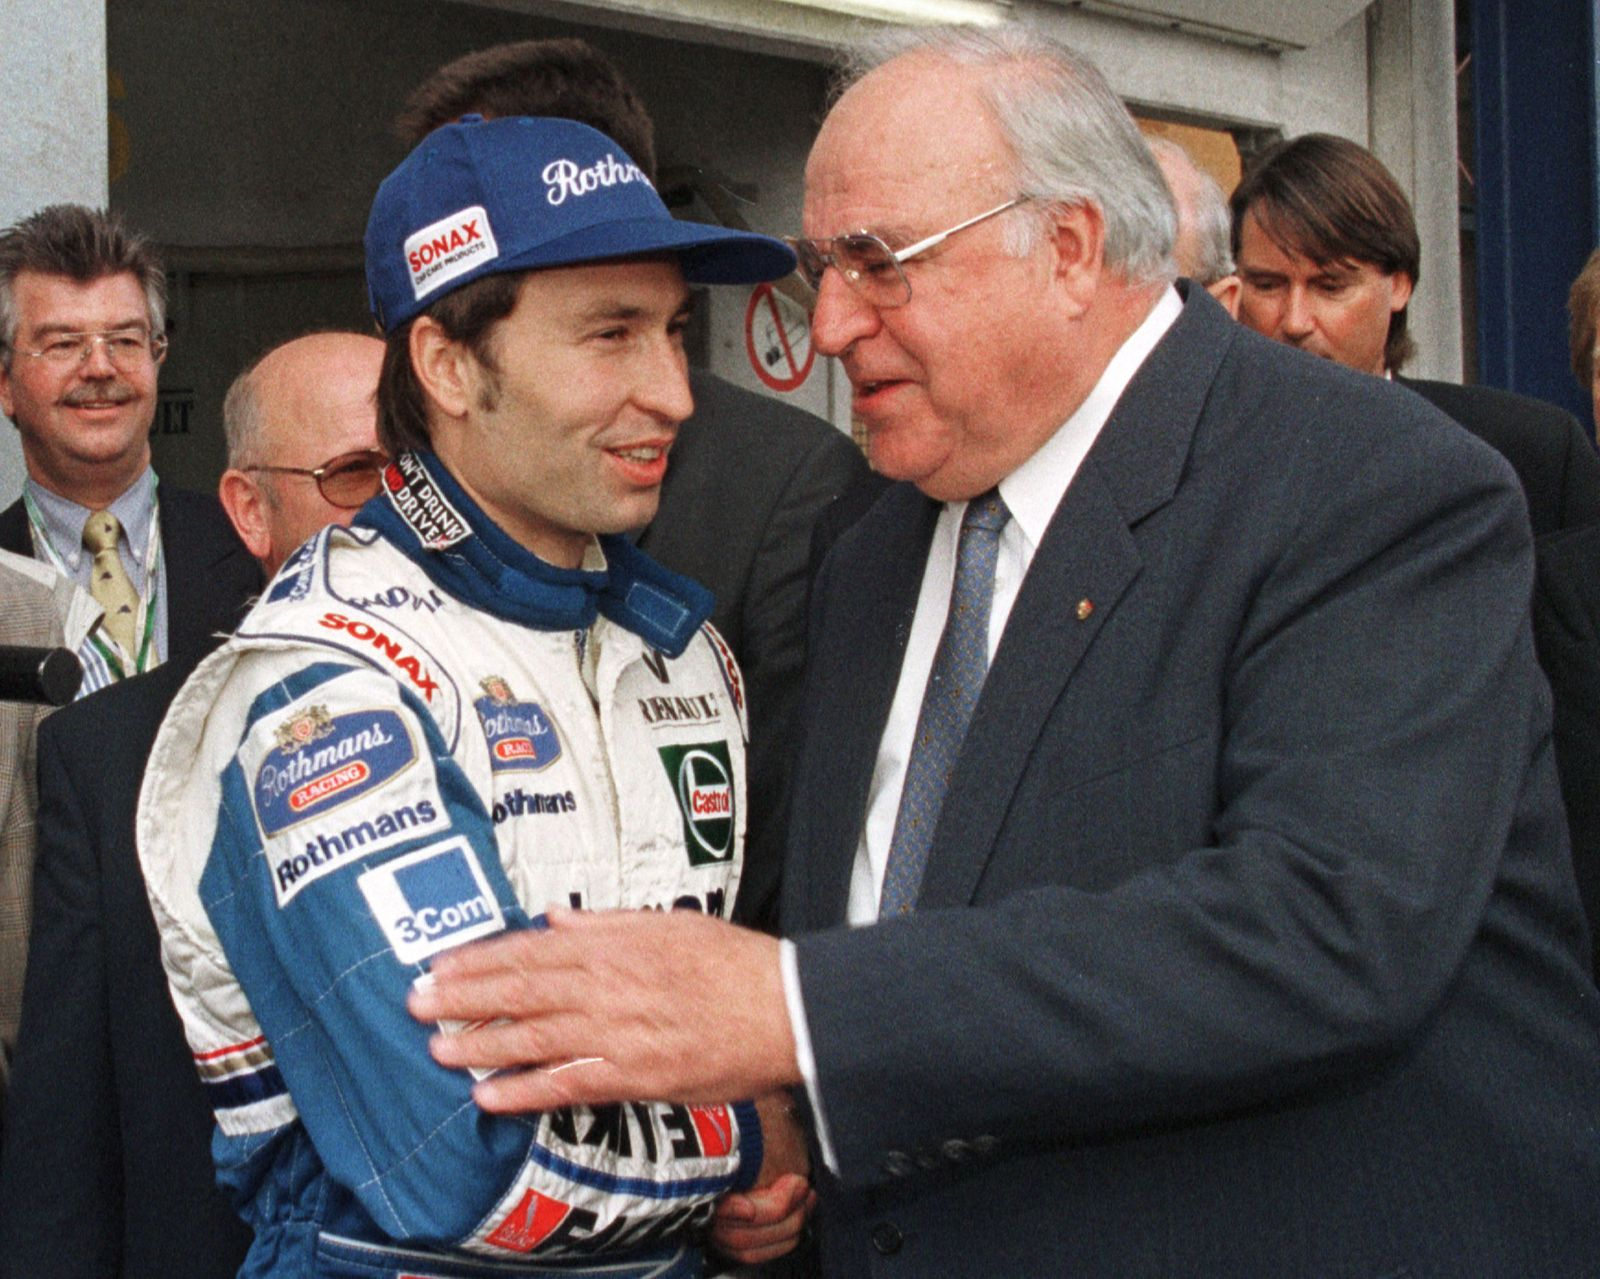 HEINZ HARALD FRENTZEN AND CHANCELLOR HELMUT KOHL